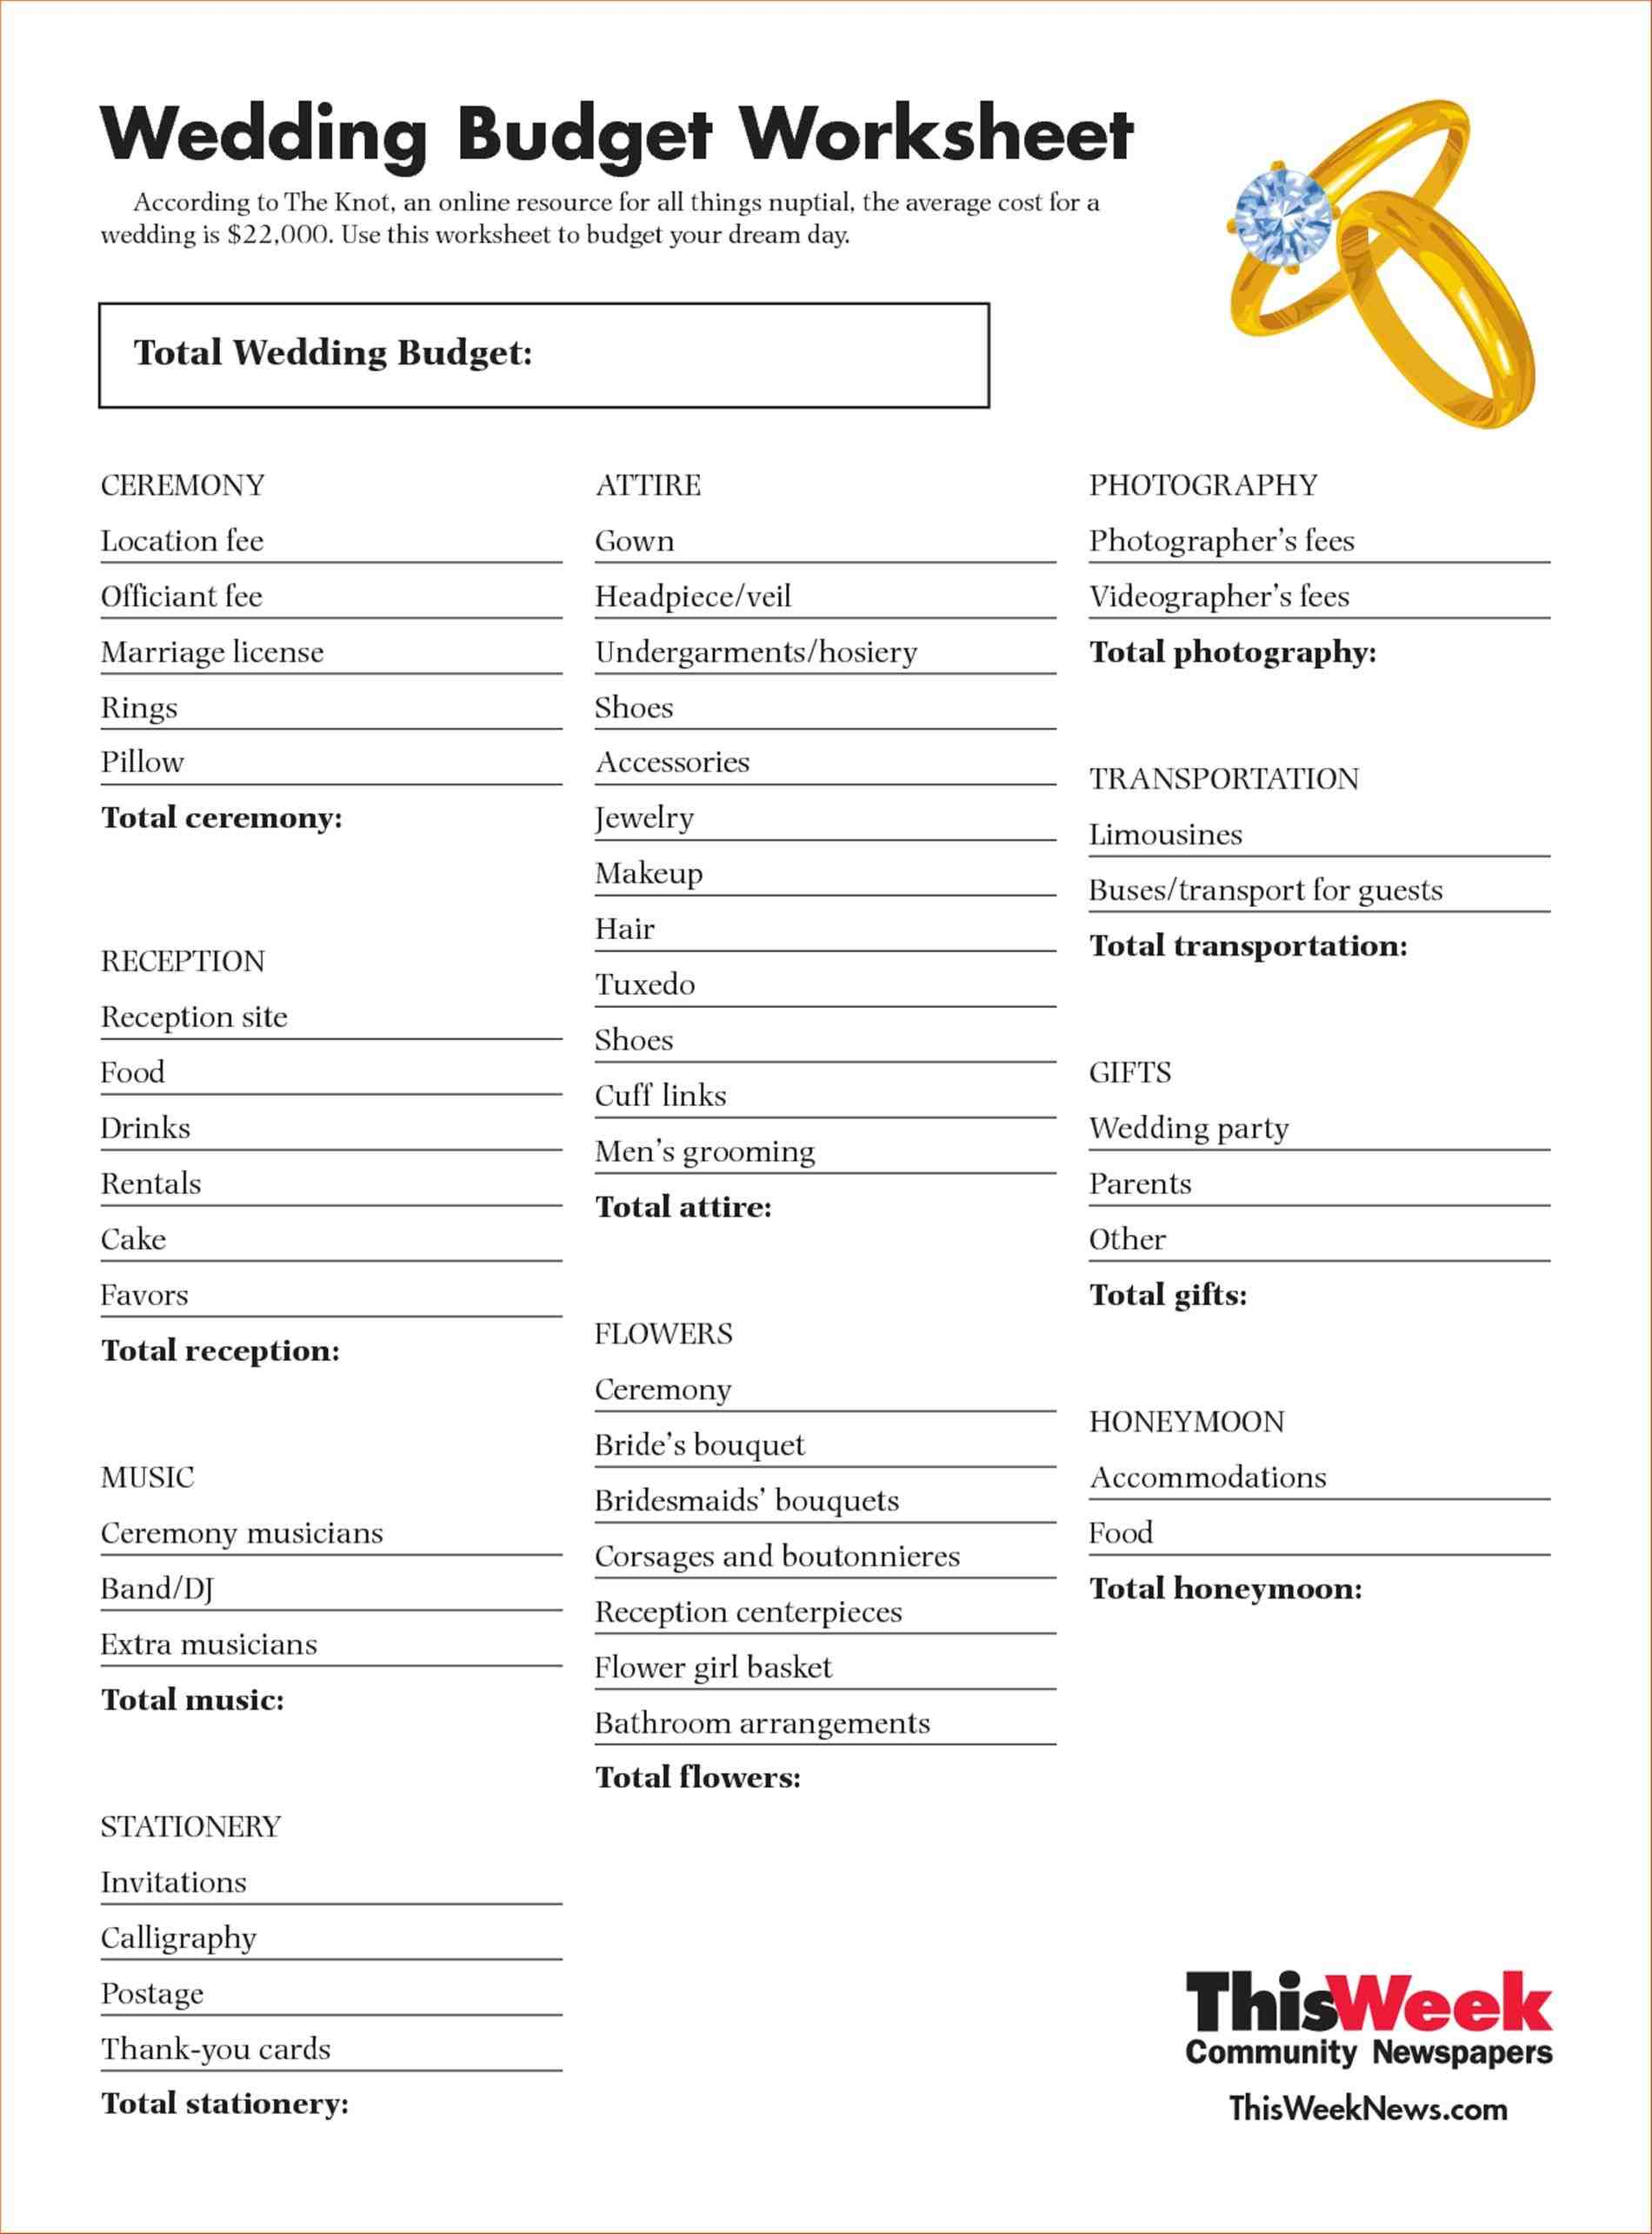 Wedding Event Expense Calculator Worksheet